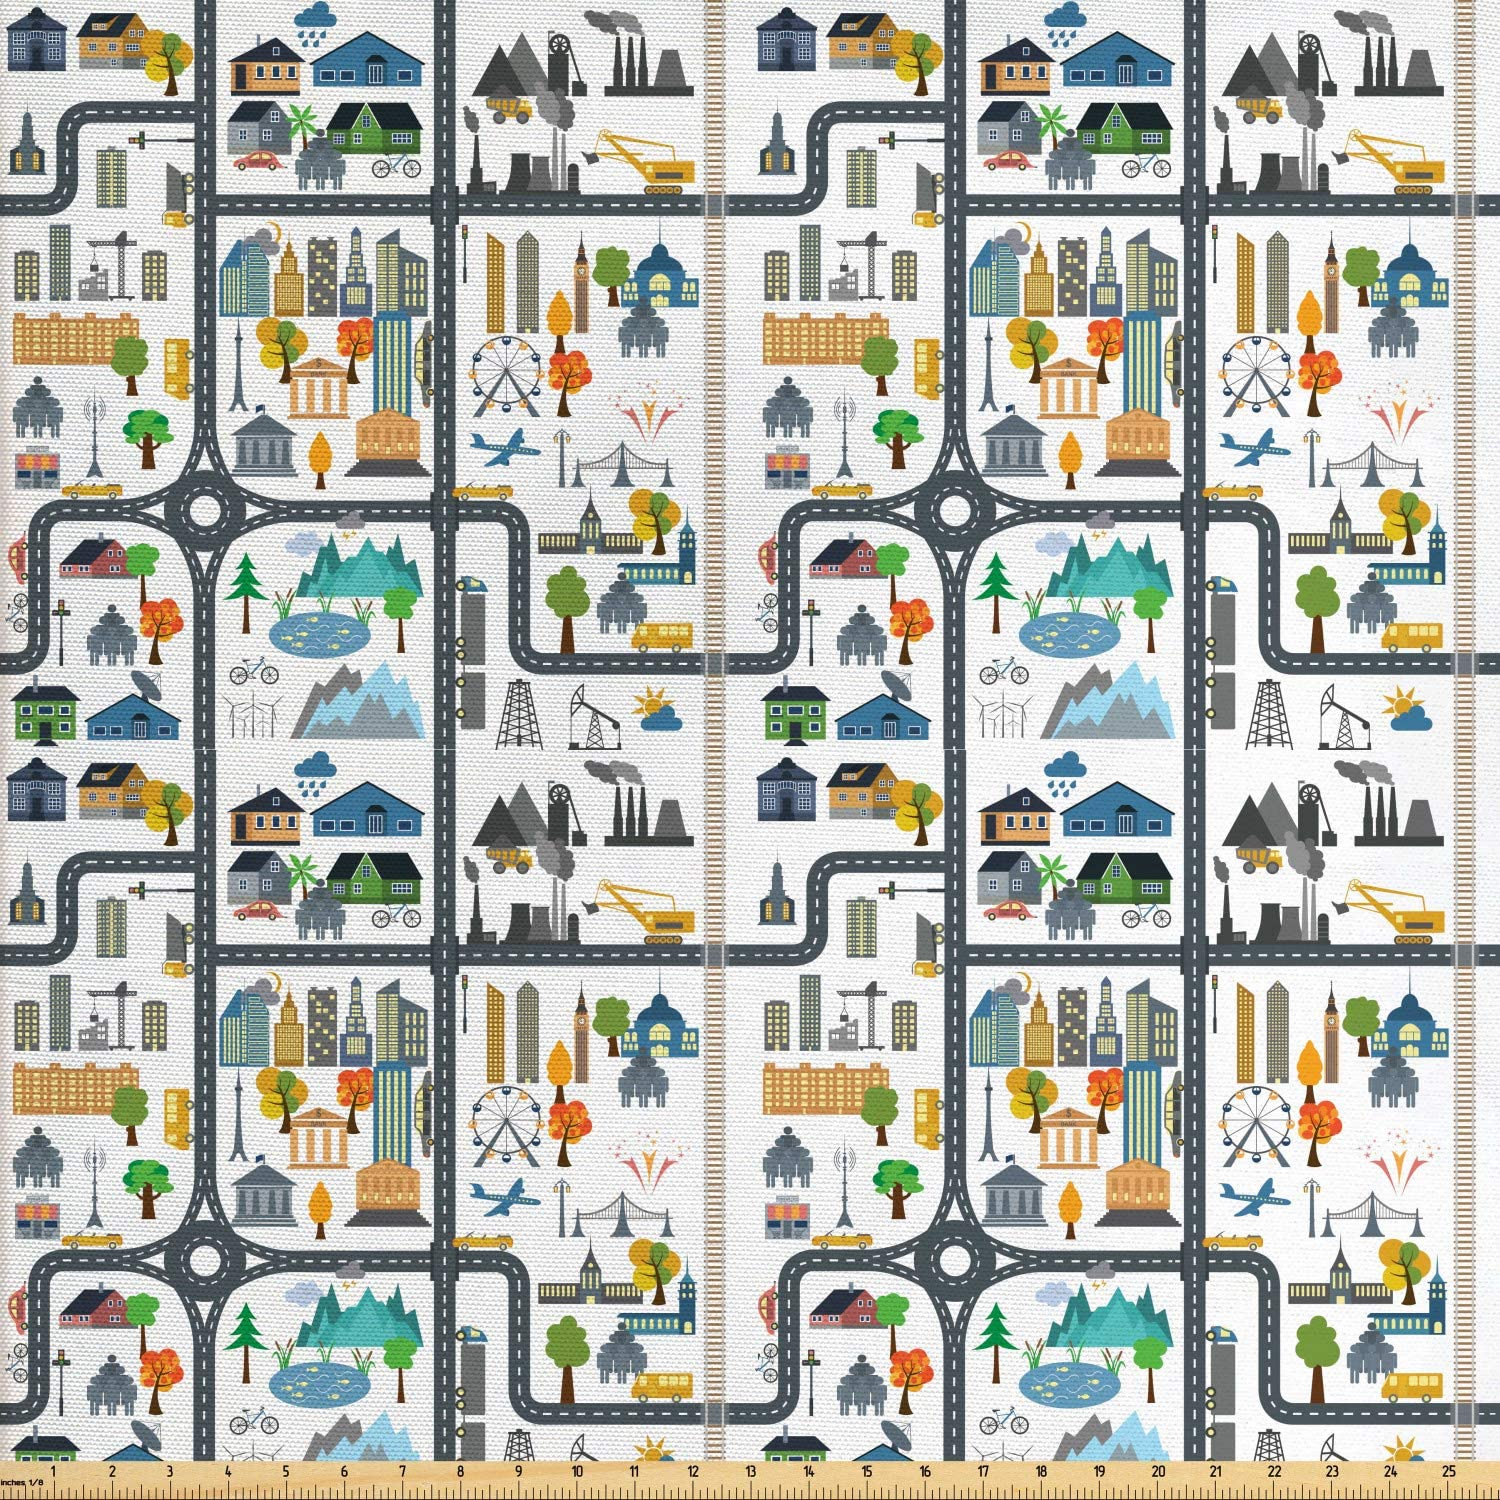 Ambesonne Car Race Track Fabric by The Yard, Graphic Illustration of Cityscape Divided by Roads Nursery Activity, Decorative Fabric for Upholstery and Home Accents, 2 Yards, White Grey